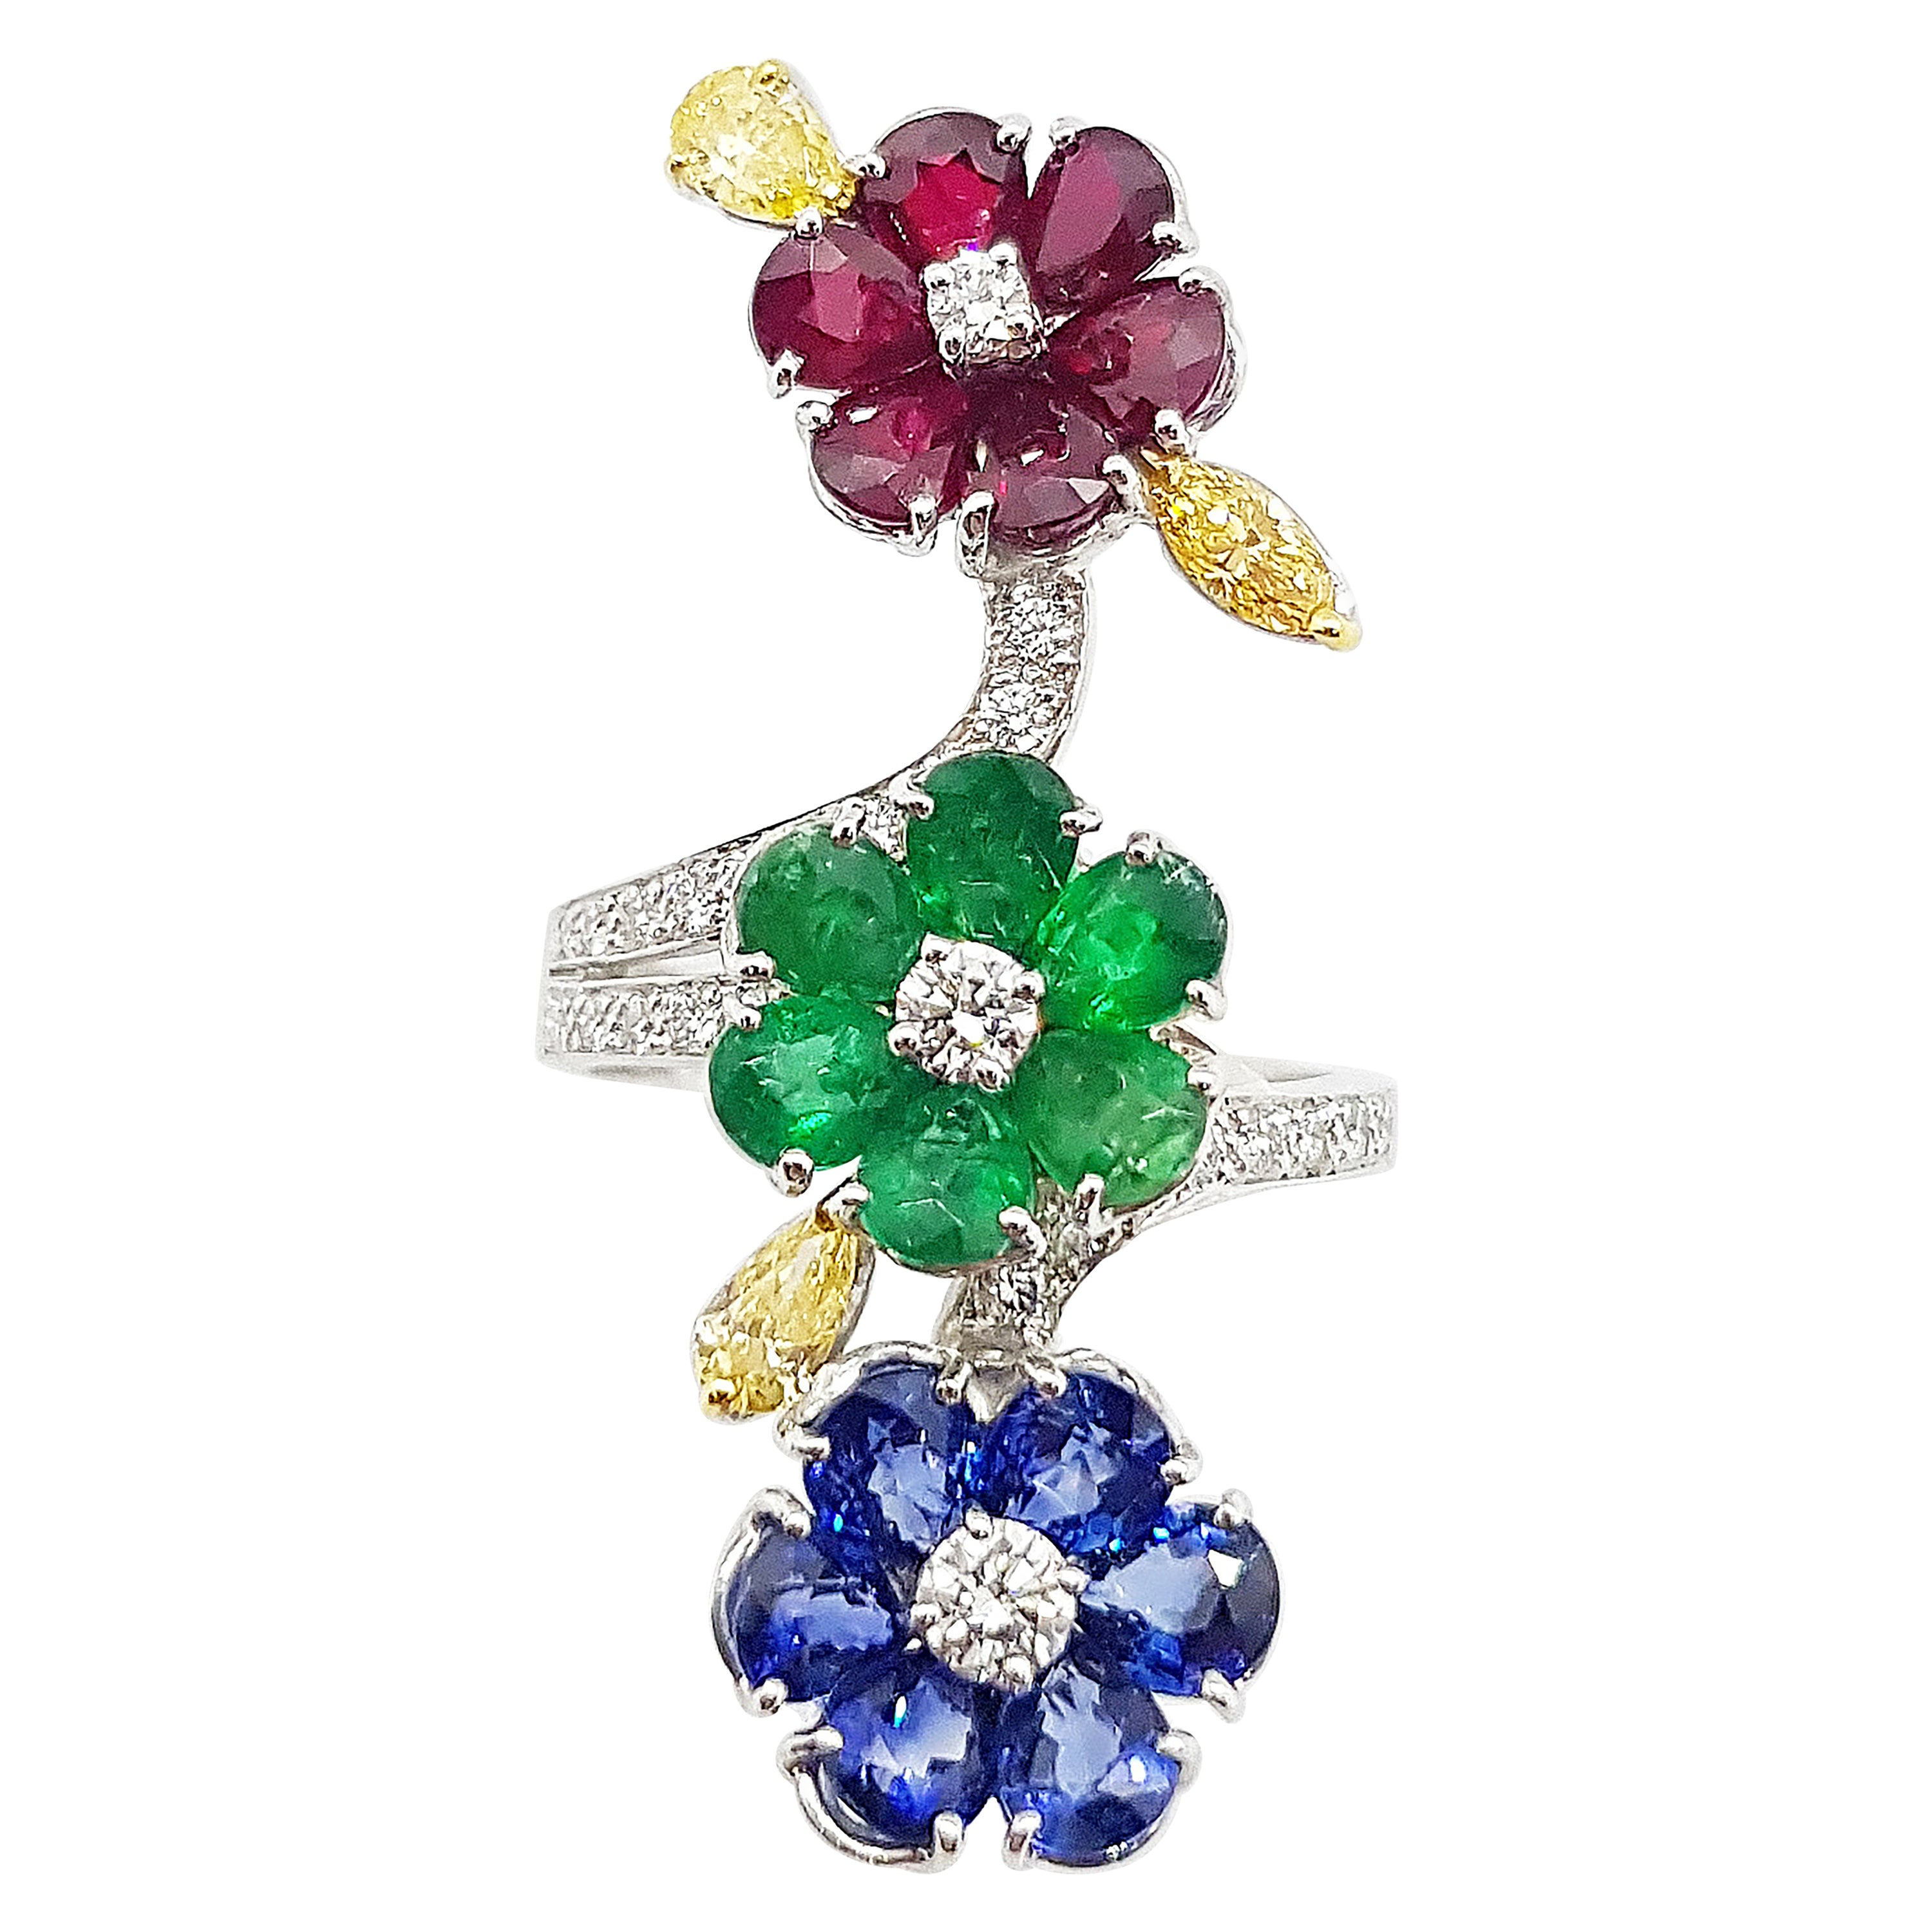 Ruby, Blue Sapphire, Emerald with Yellow Diamond and Diamond Ring 18k White Gold